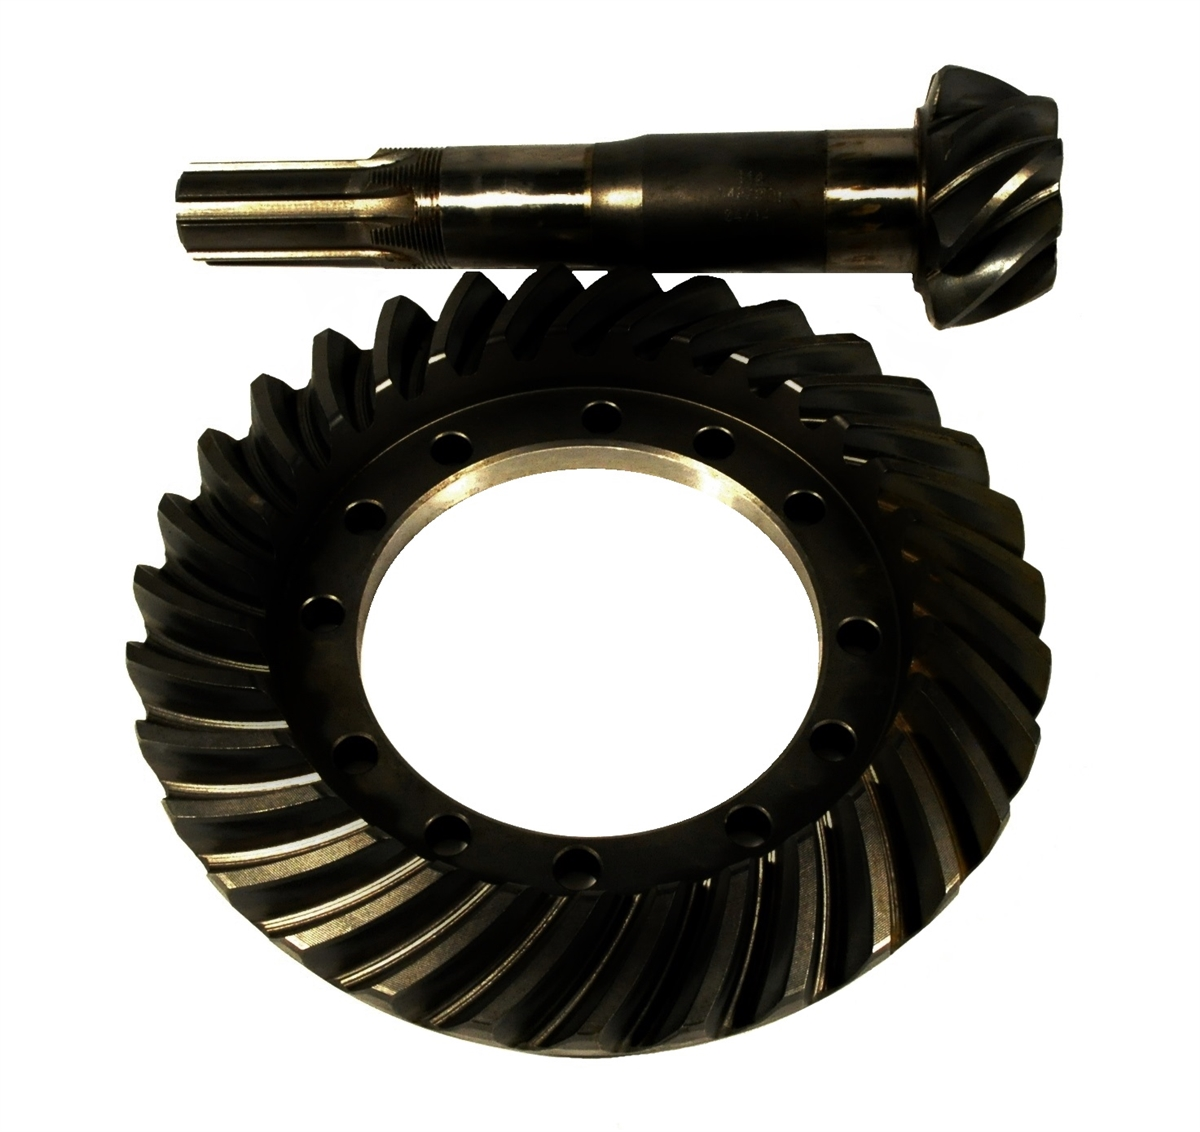 Massey Ferguson Genuine Tractor Spare Parts Online Dealer. Landini Massey Crown Wheel And Pinion 3427358m91. John Deere. Disk 5400 John Deere Pto Diagram At Scoala.co